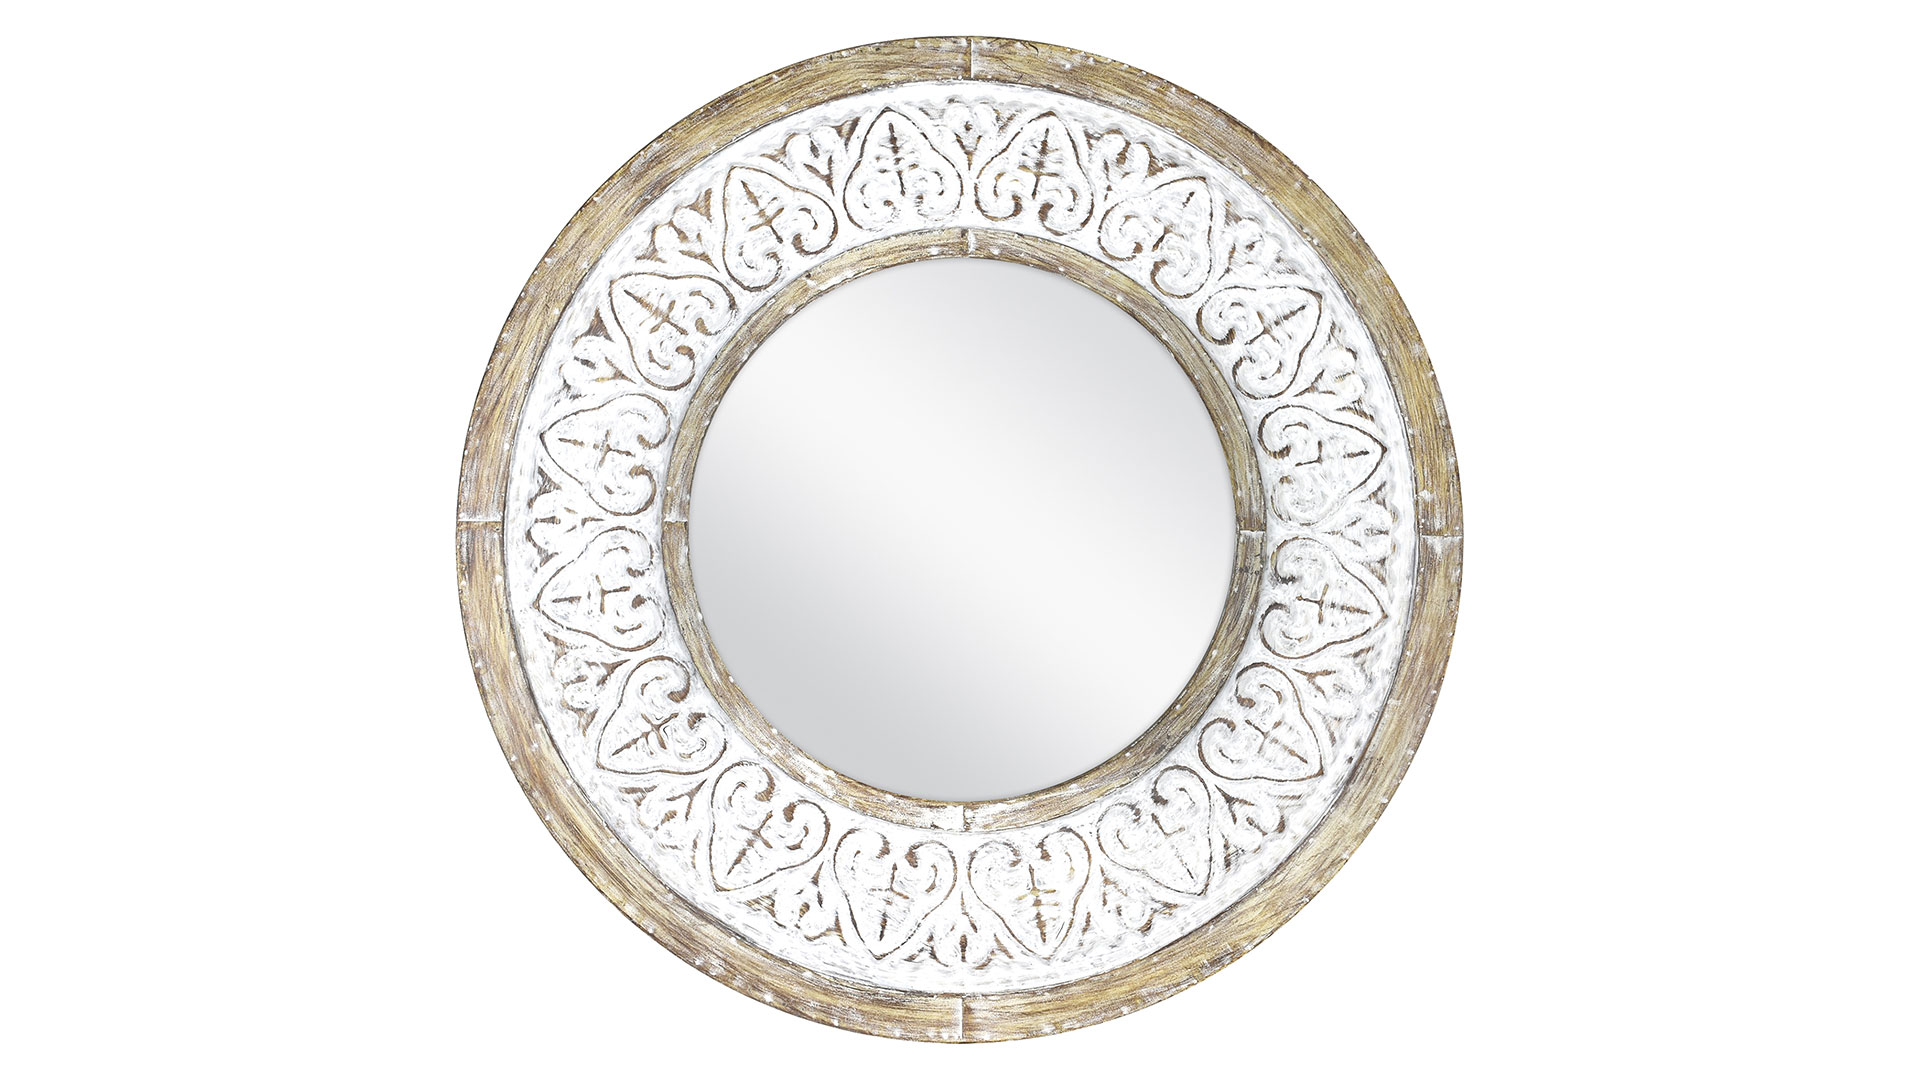 Distressed 26-Inch Round Wall Mirror in Rustic White